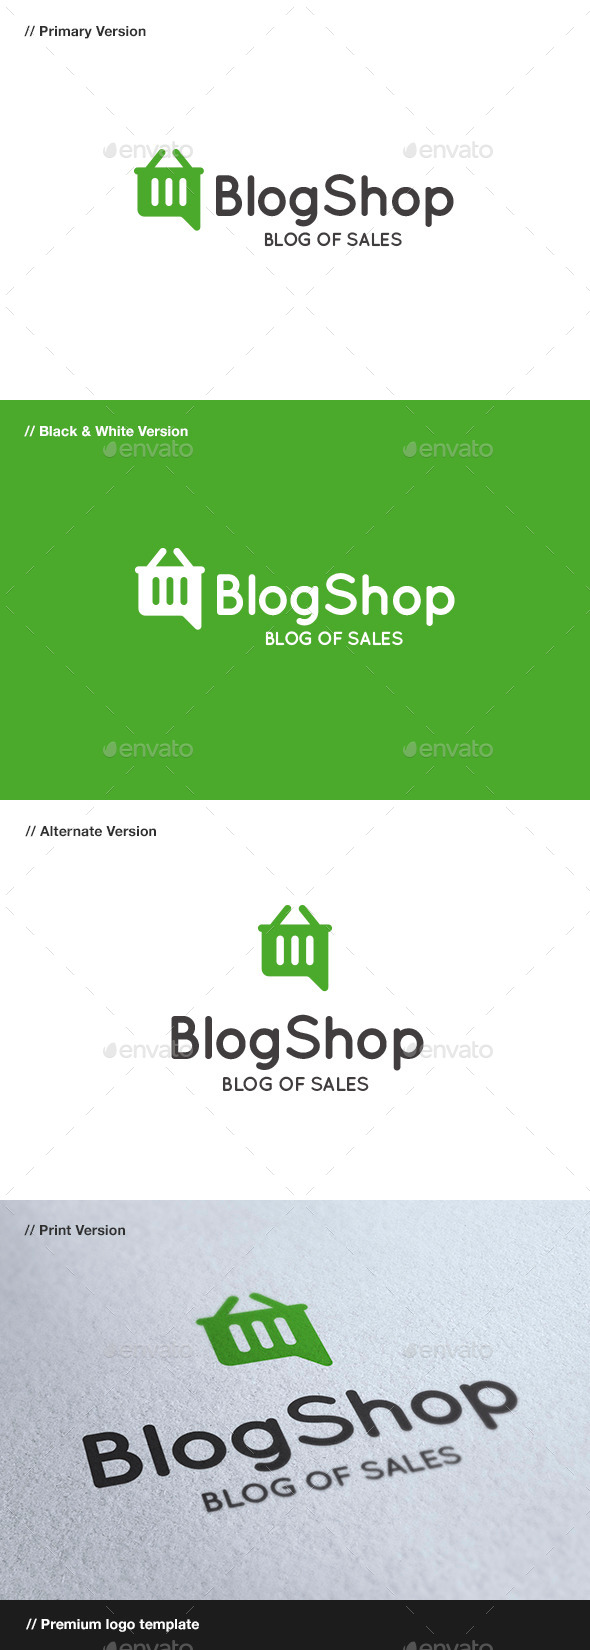 GraphicRiver Blog Shop 8843969